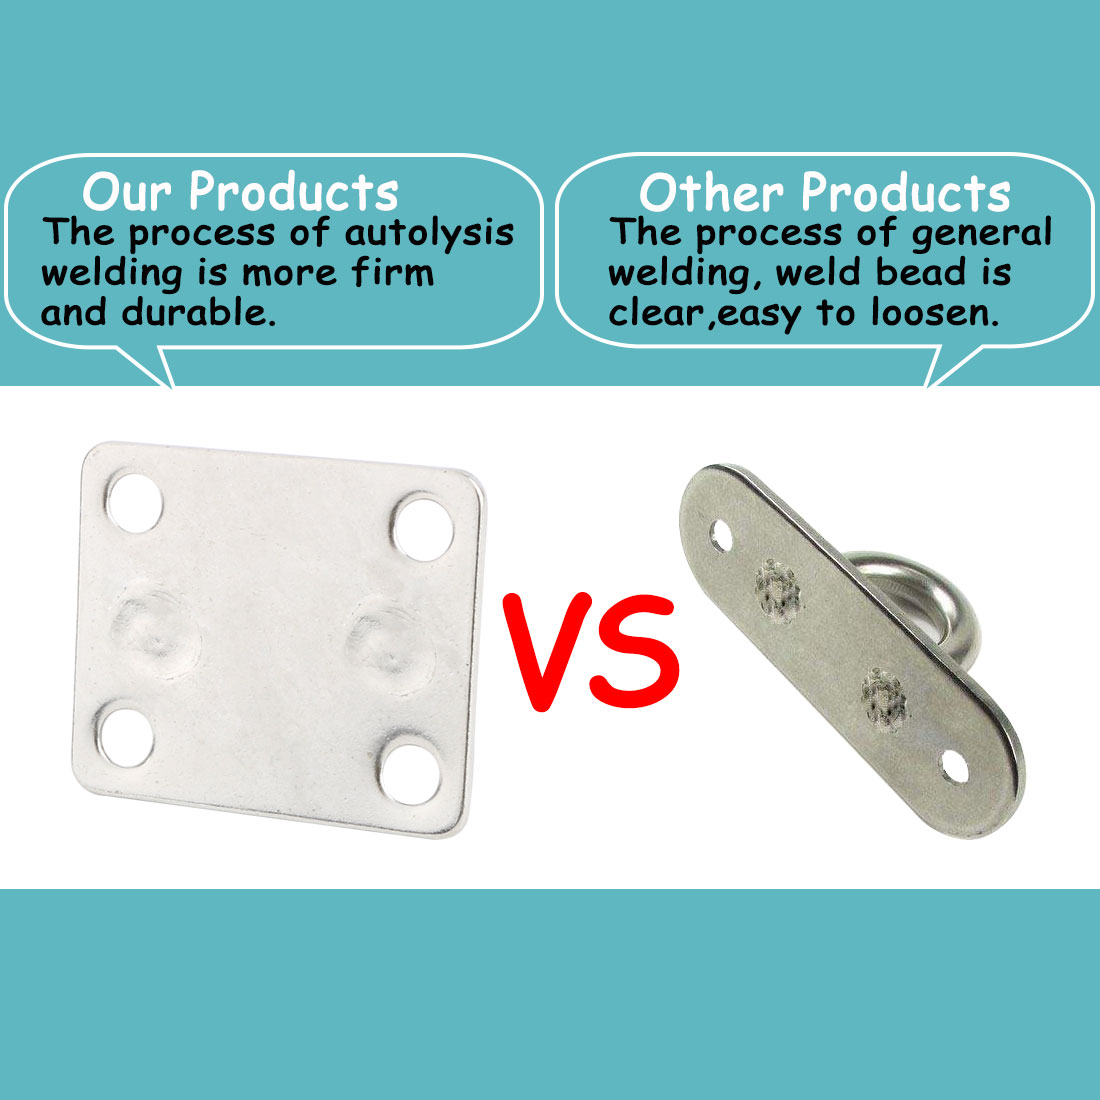 304 Stainless Steel Enclosed Ceiling Hook Hanger Silver Tone 60mm x 50mm x 40mm - image 2 of 7